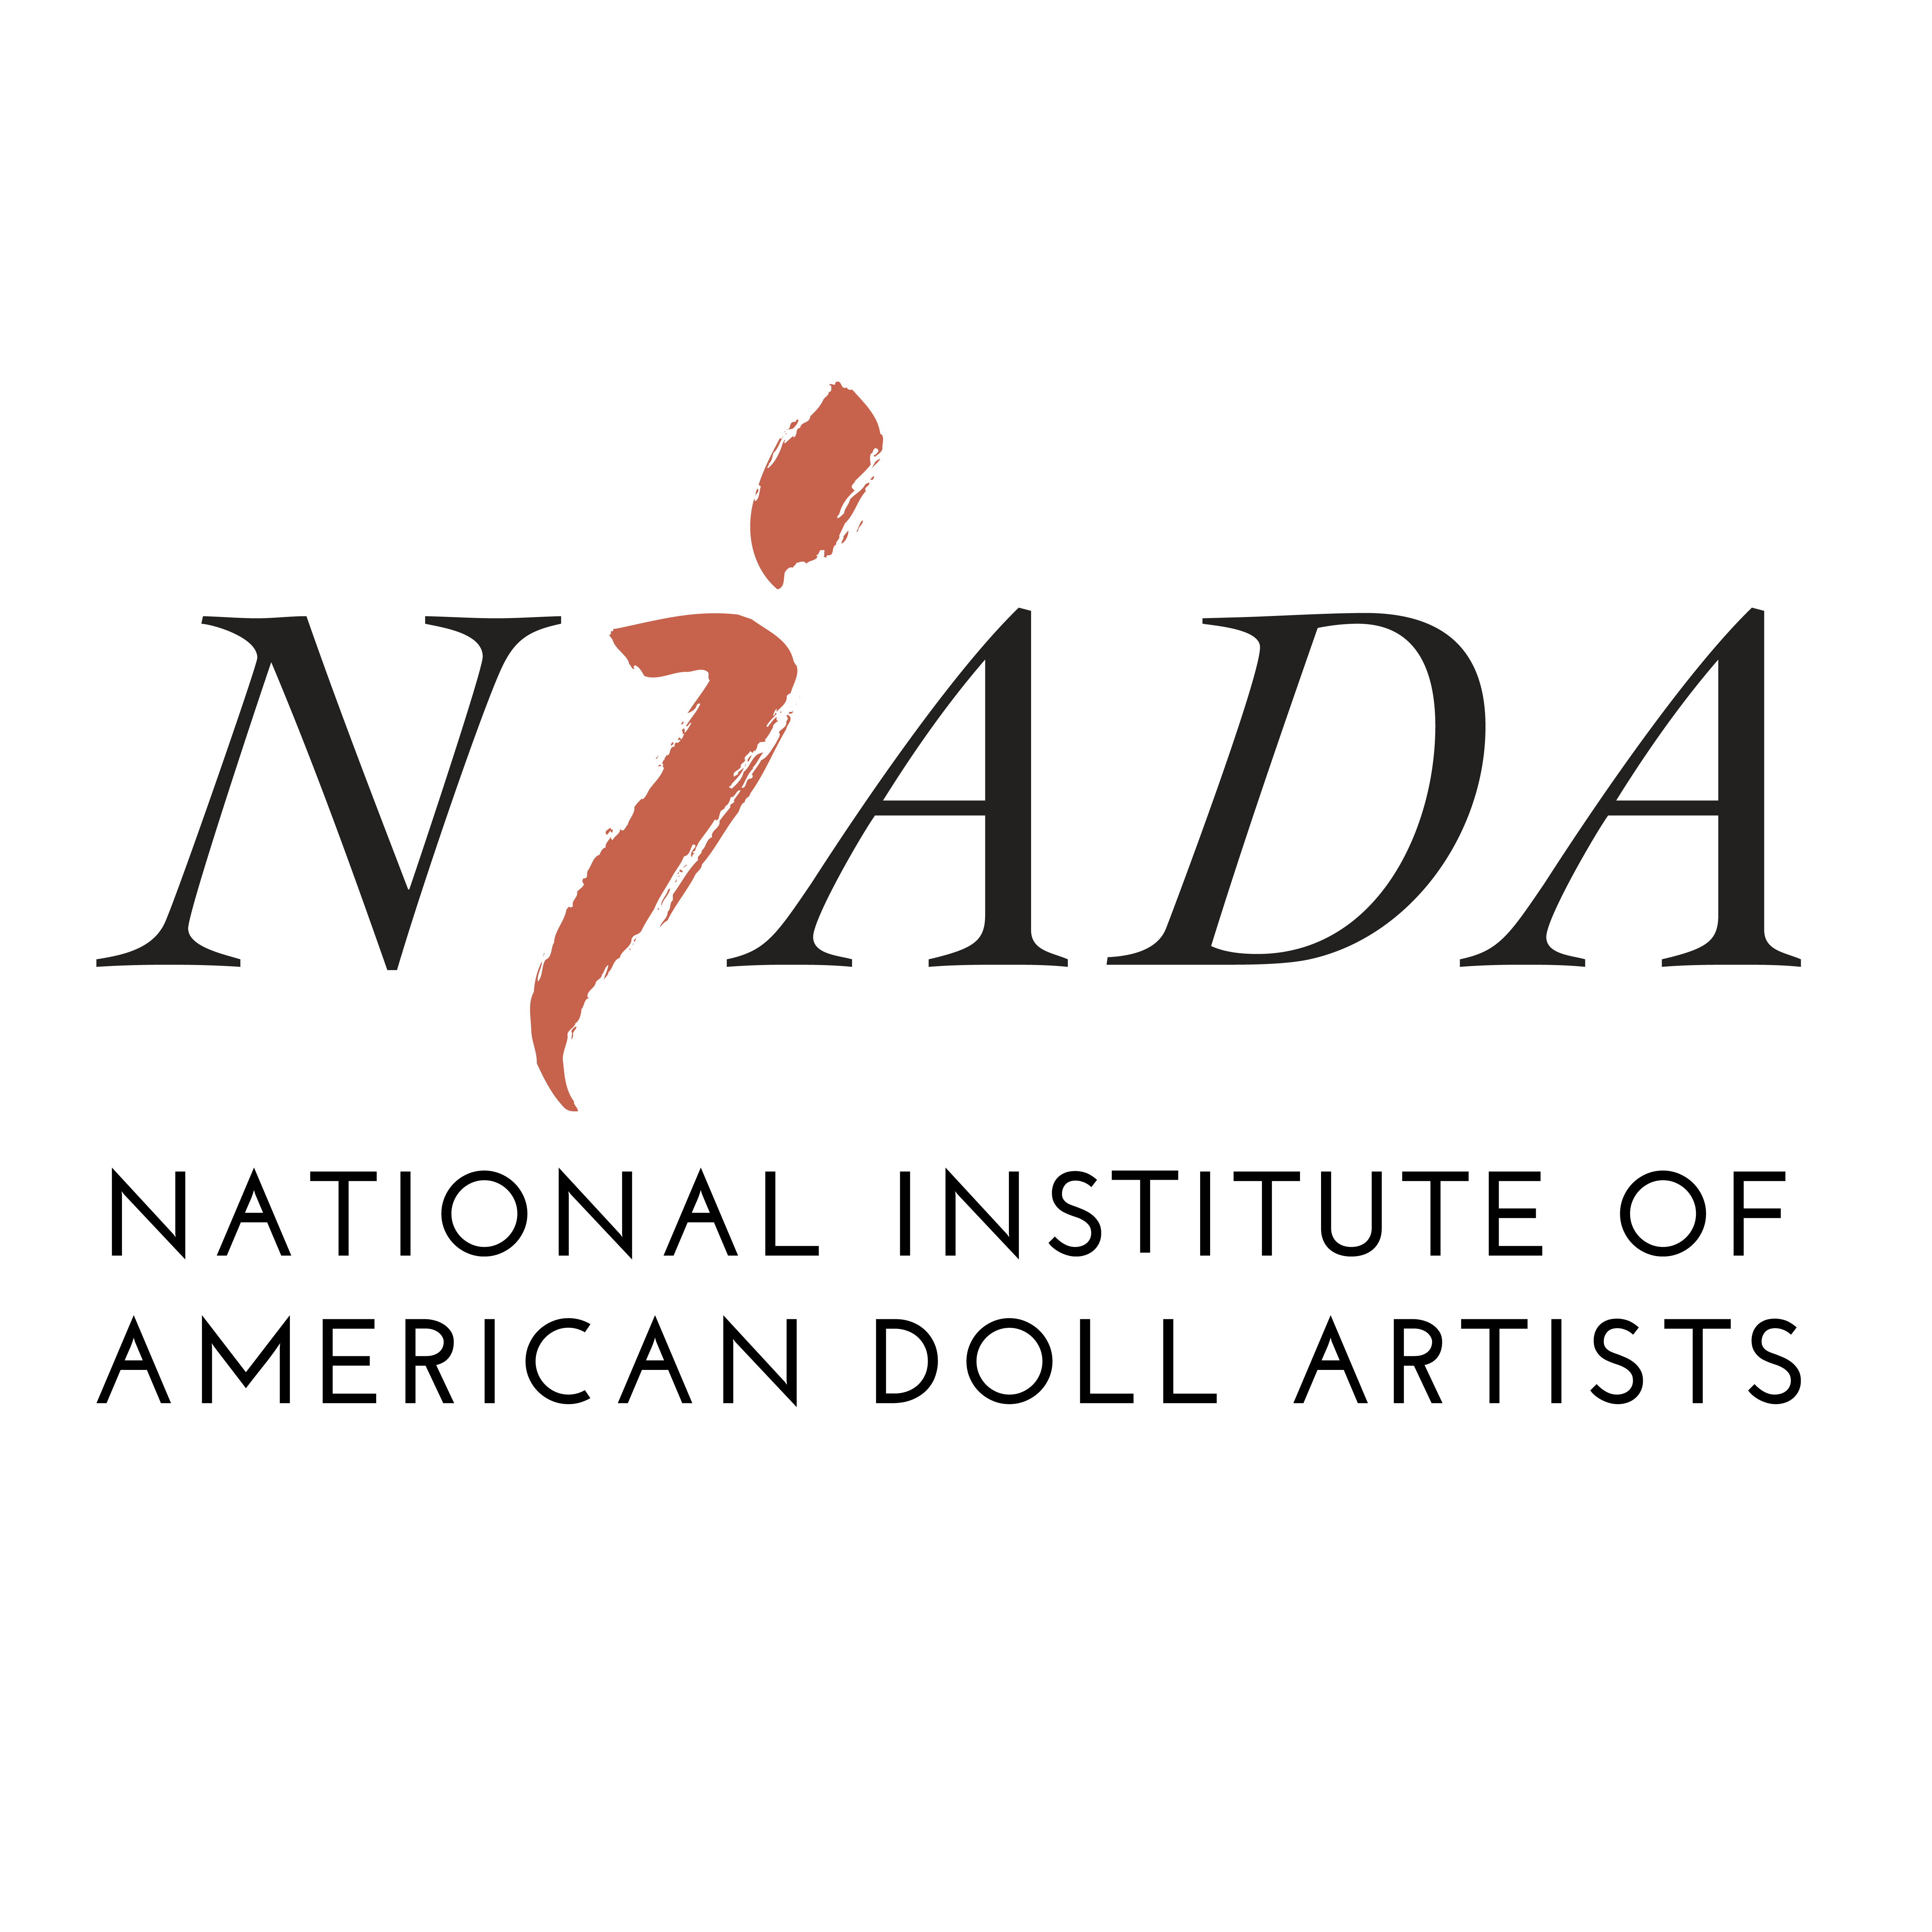 National Institute of American Doll Artists